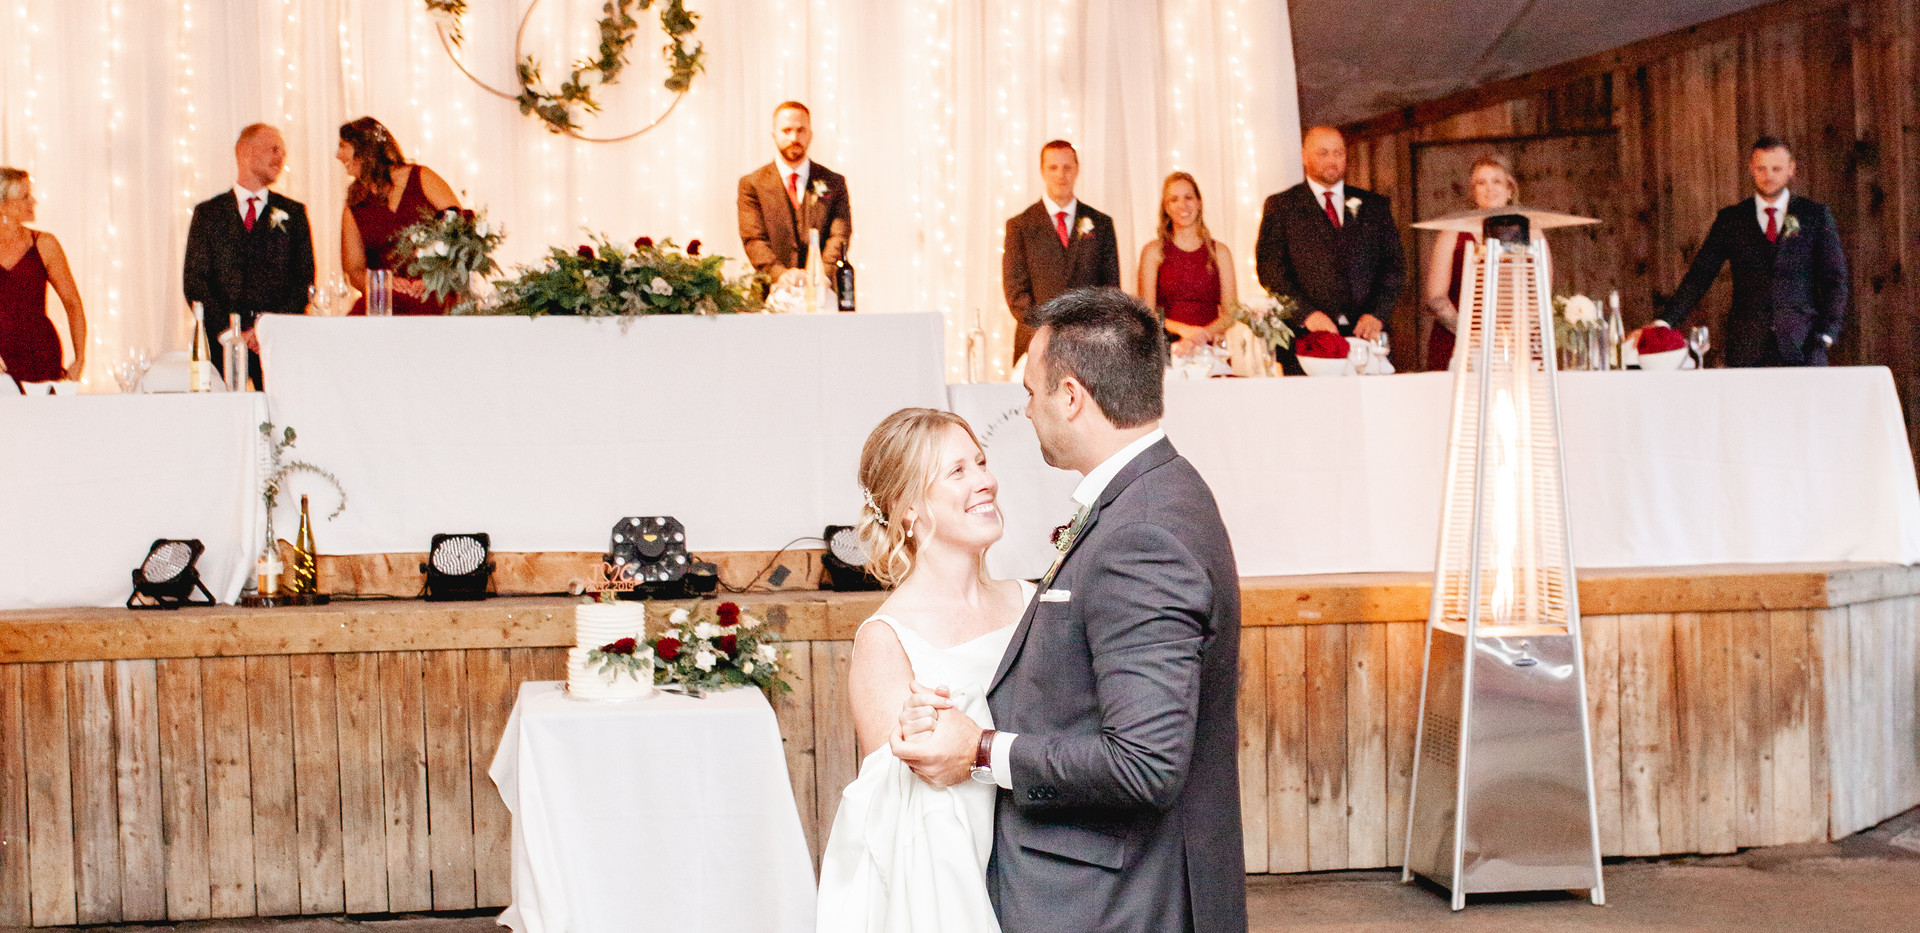 bride and groom sharing their first dance in front of Refined Rustic Glam Head Table on stage with twinkling lights and white sheer backdrop